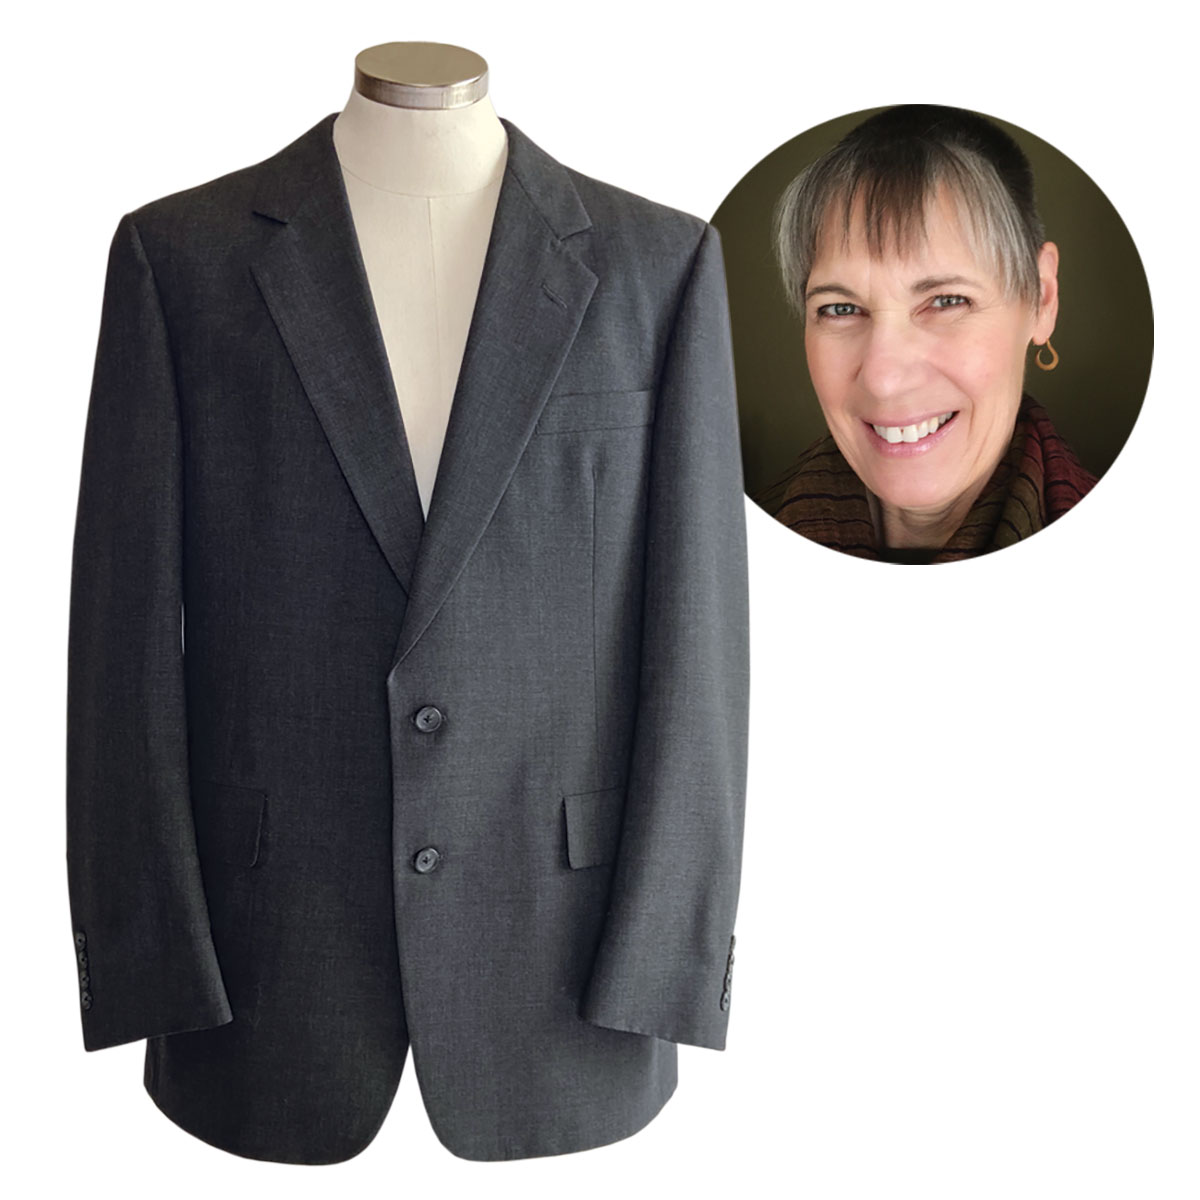 Becky Fulgoni chose a charcoal gray poly/wool blend suit to upcycle